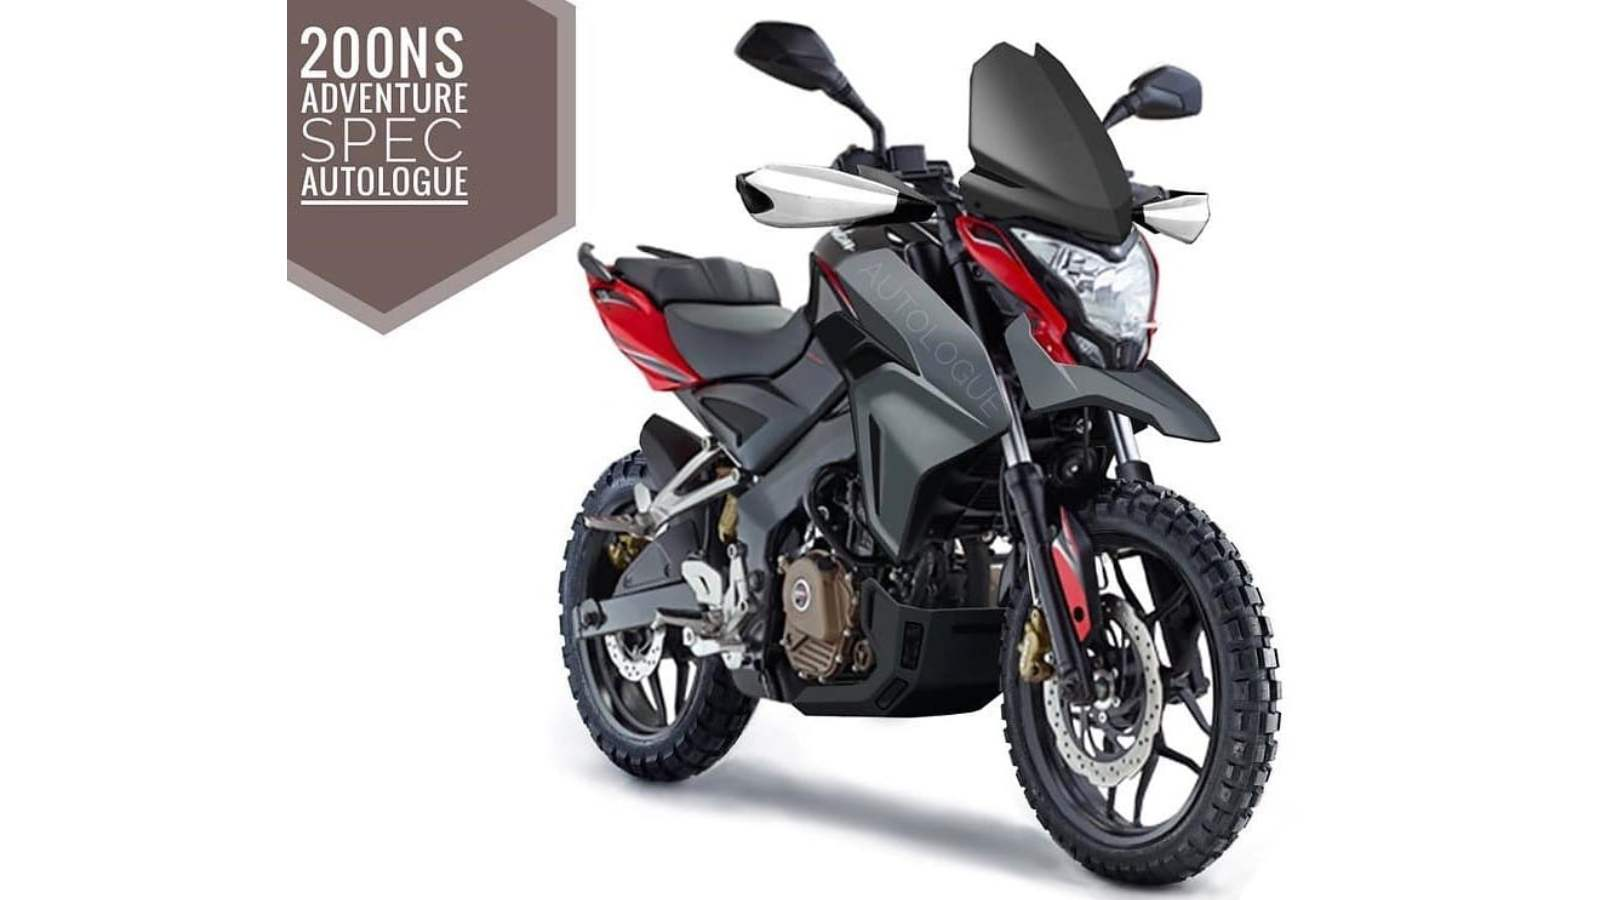 Autologue Design Can Make Your Bajaj Pulsar NS200 Adventure Ready